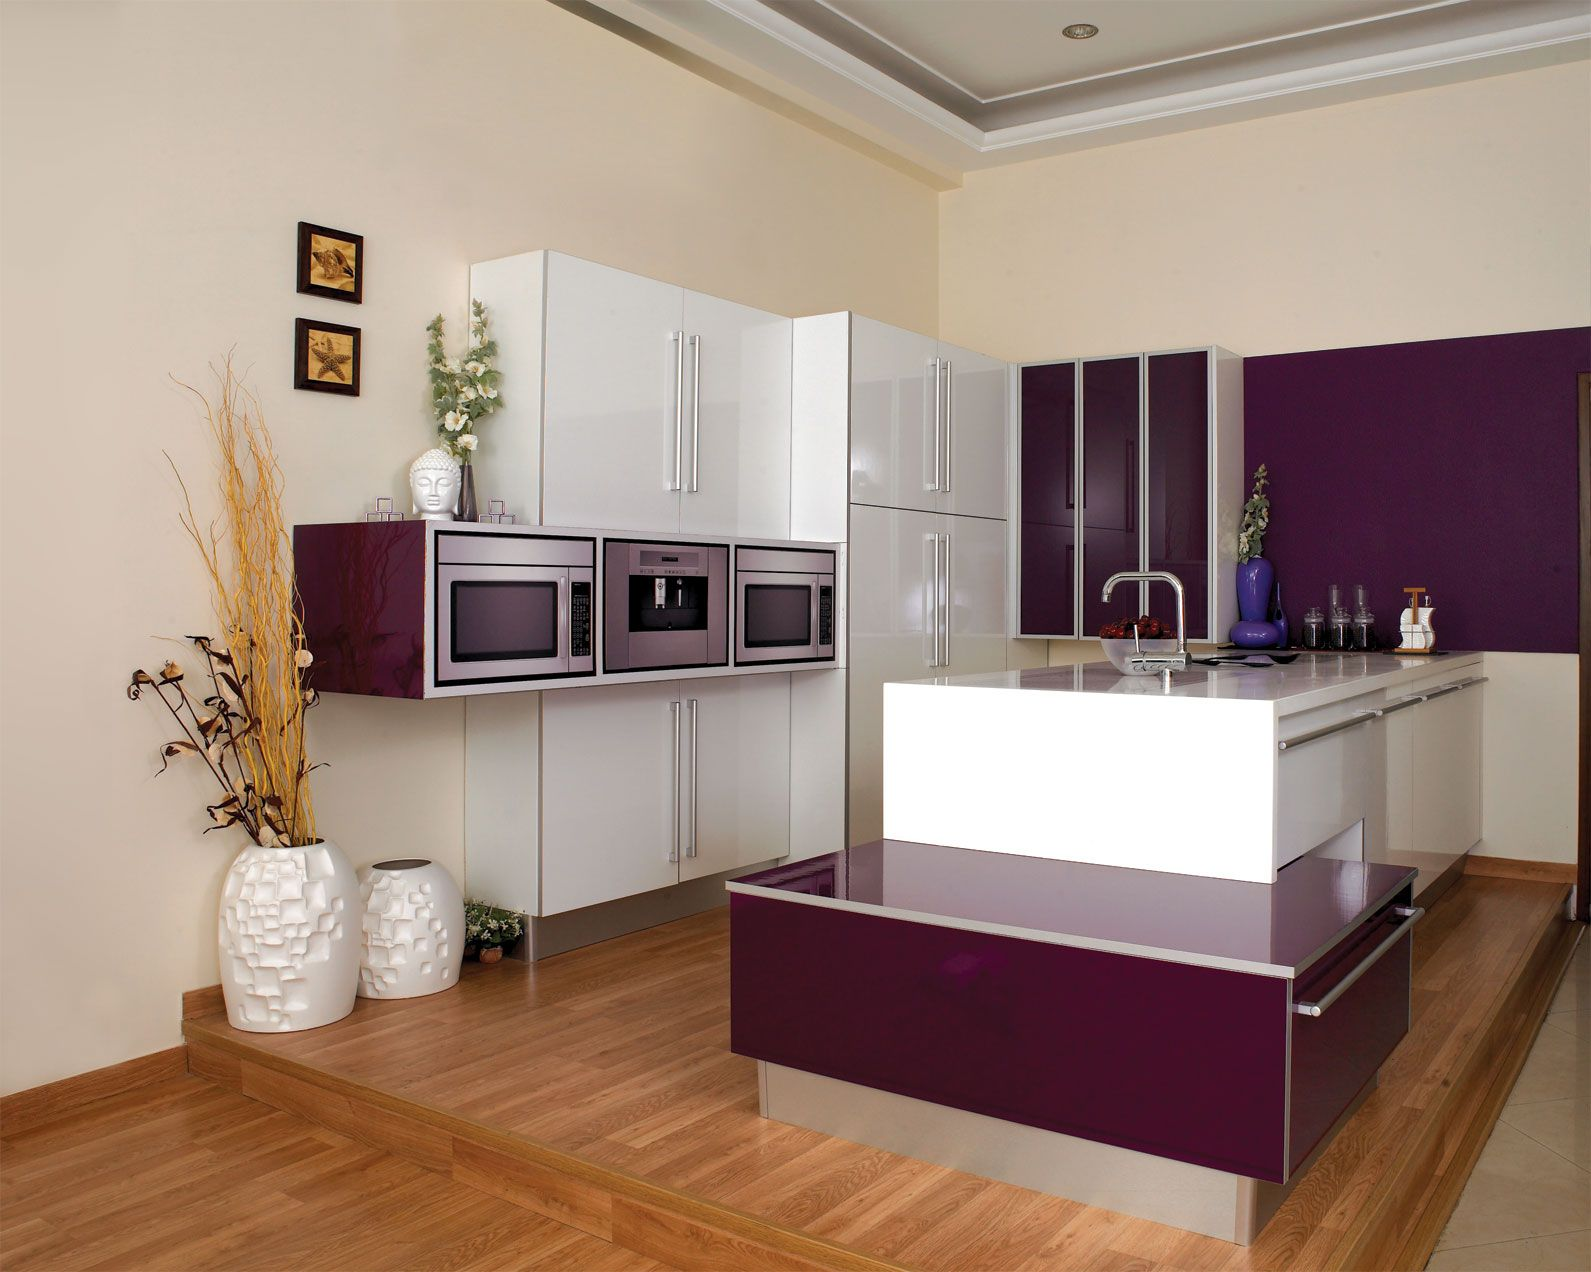 Pvc Kitchen Furniture Designs Buy Best Quality Stainless Steel Pvc Aluminum Kitchen Baskets